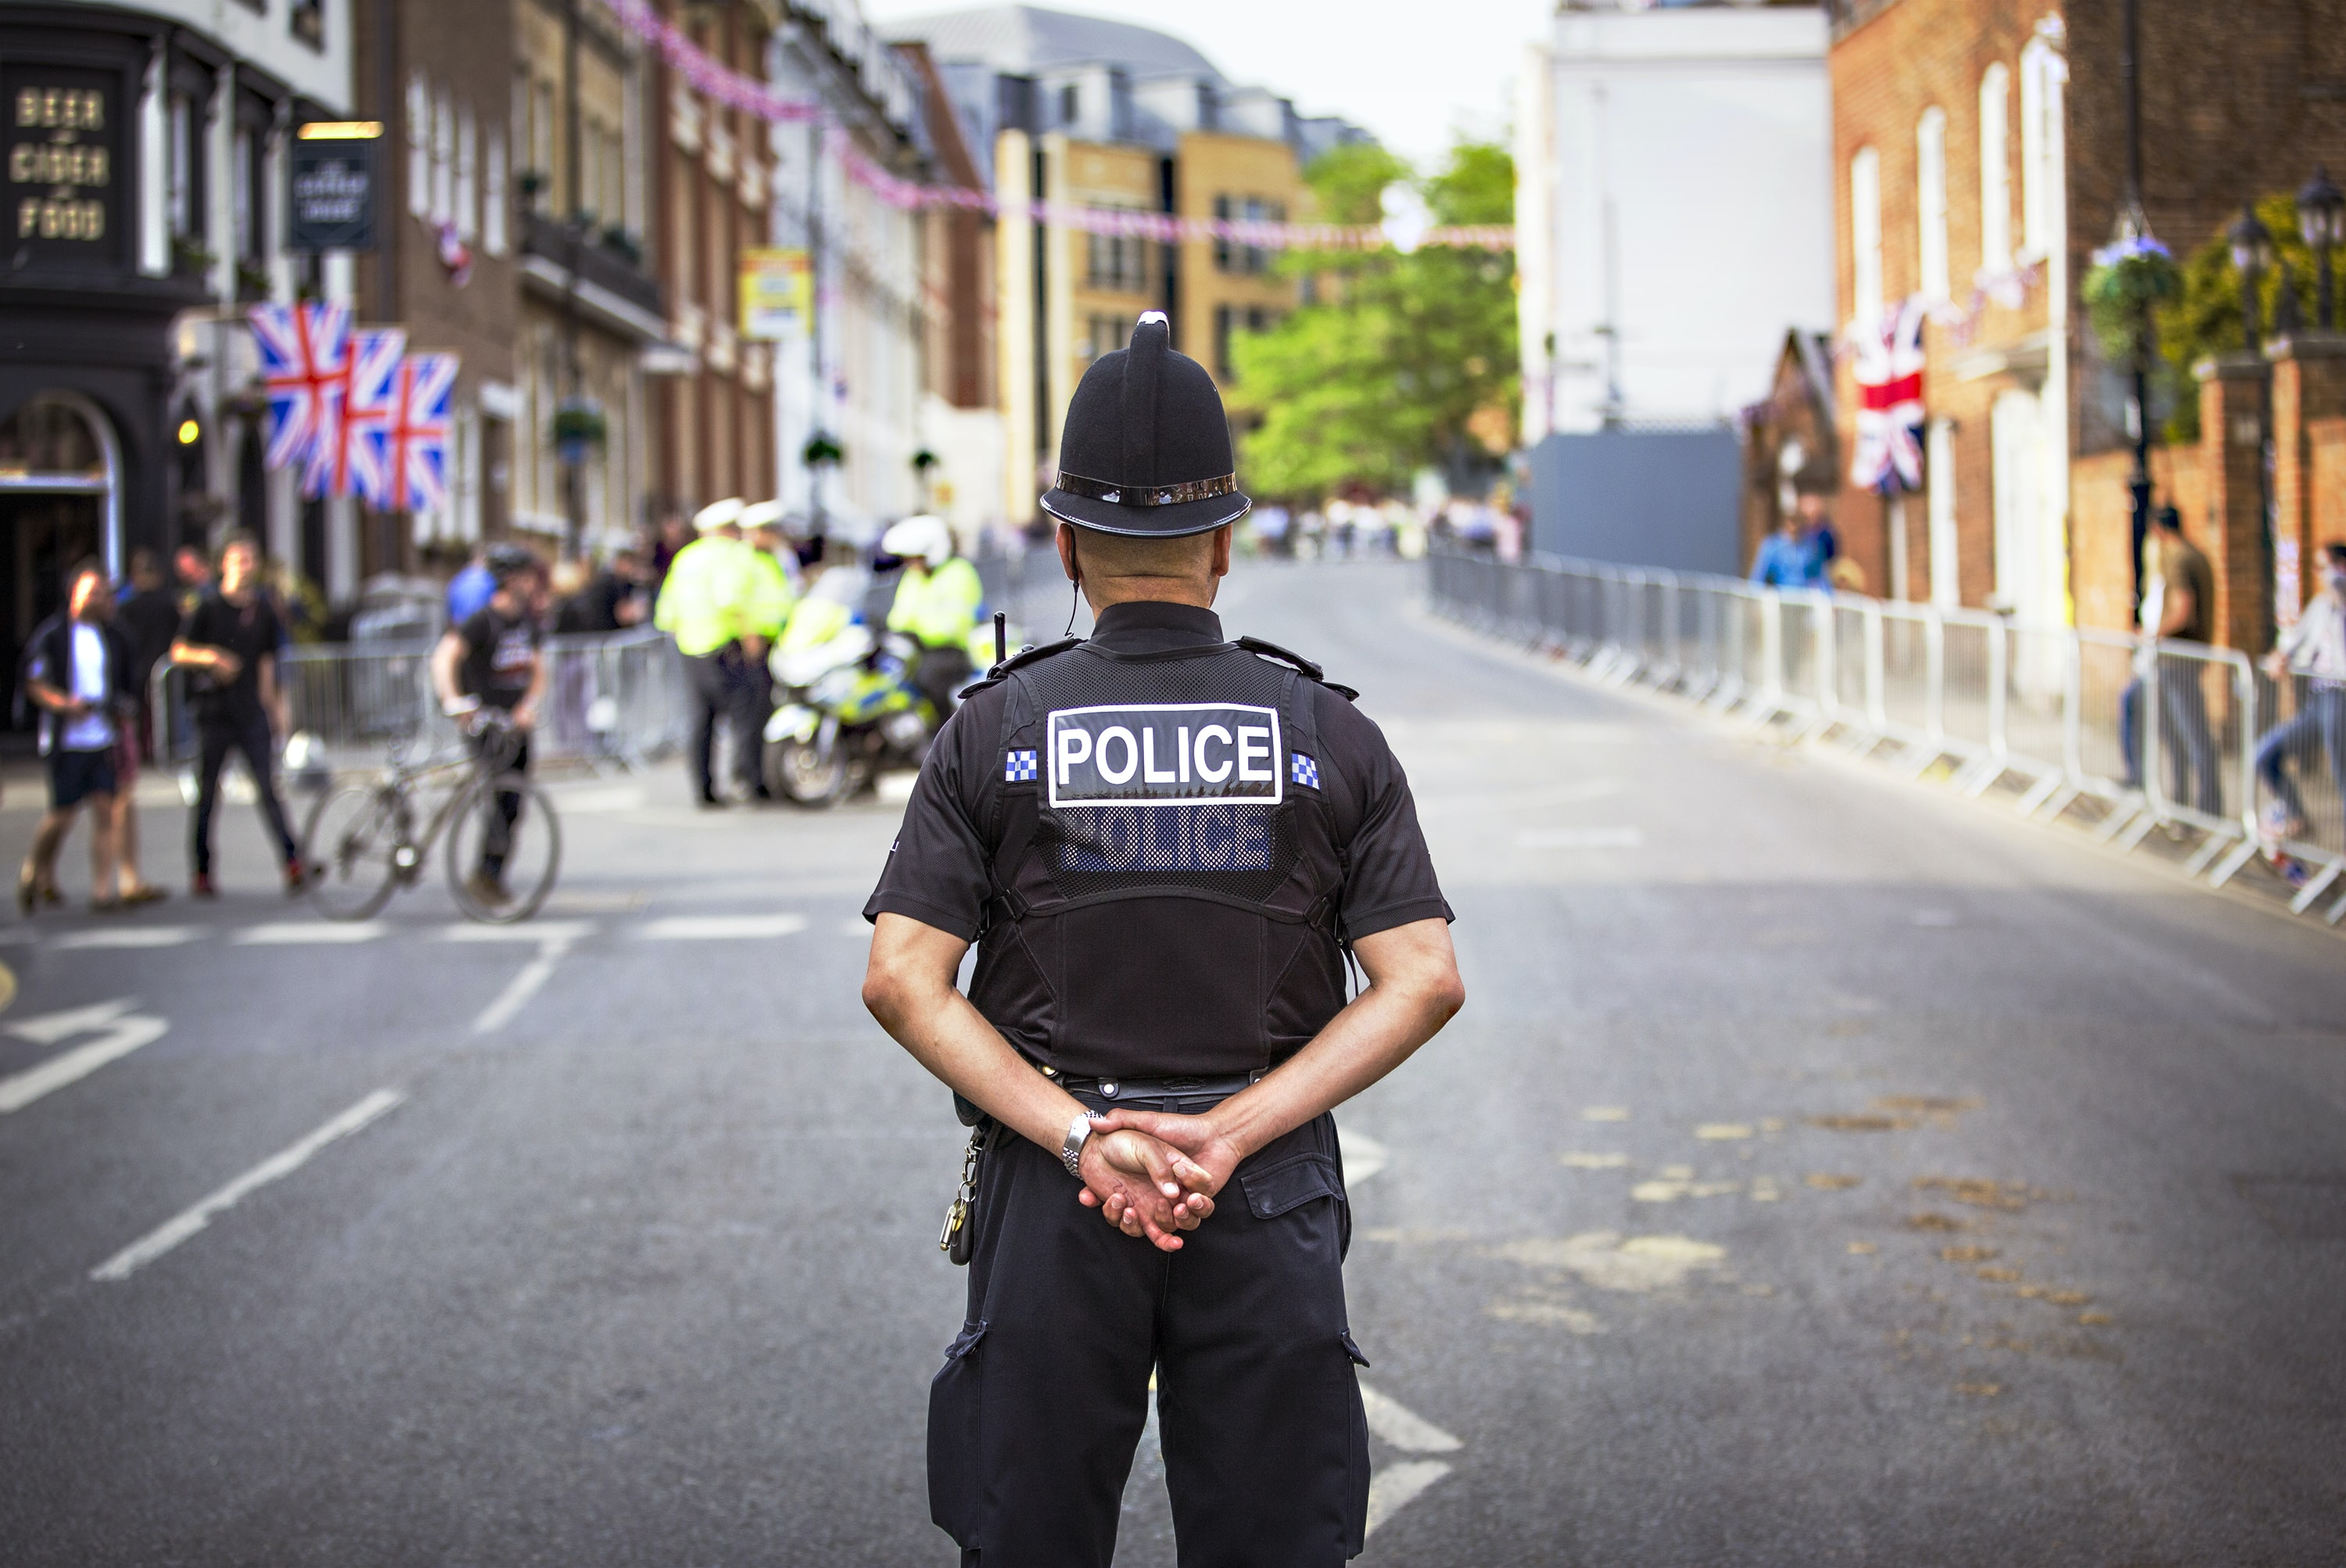 Police standing on road